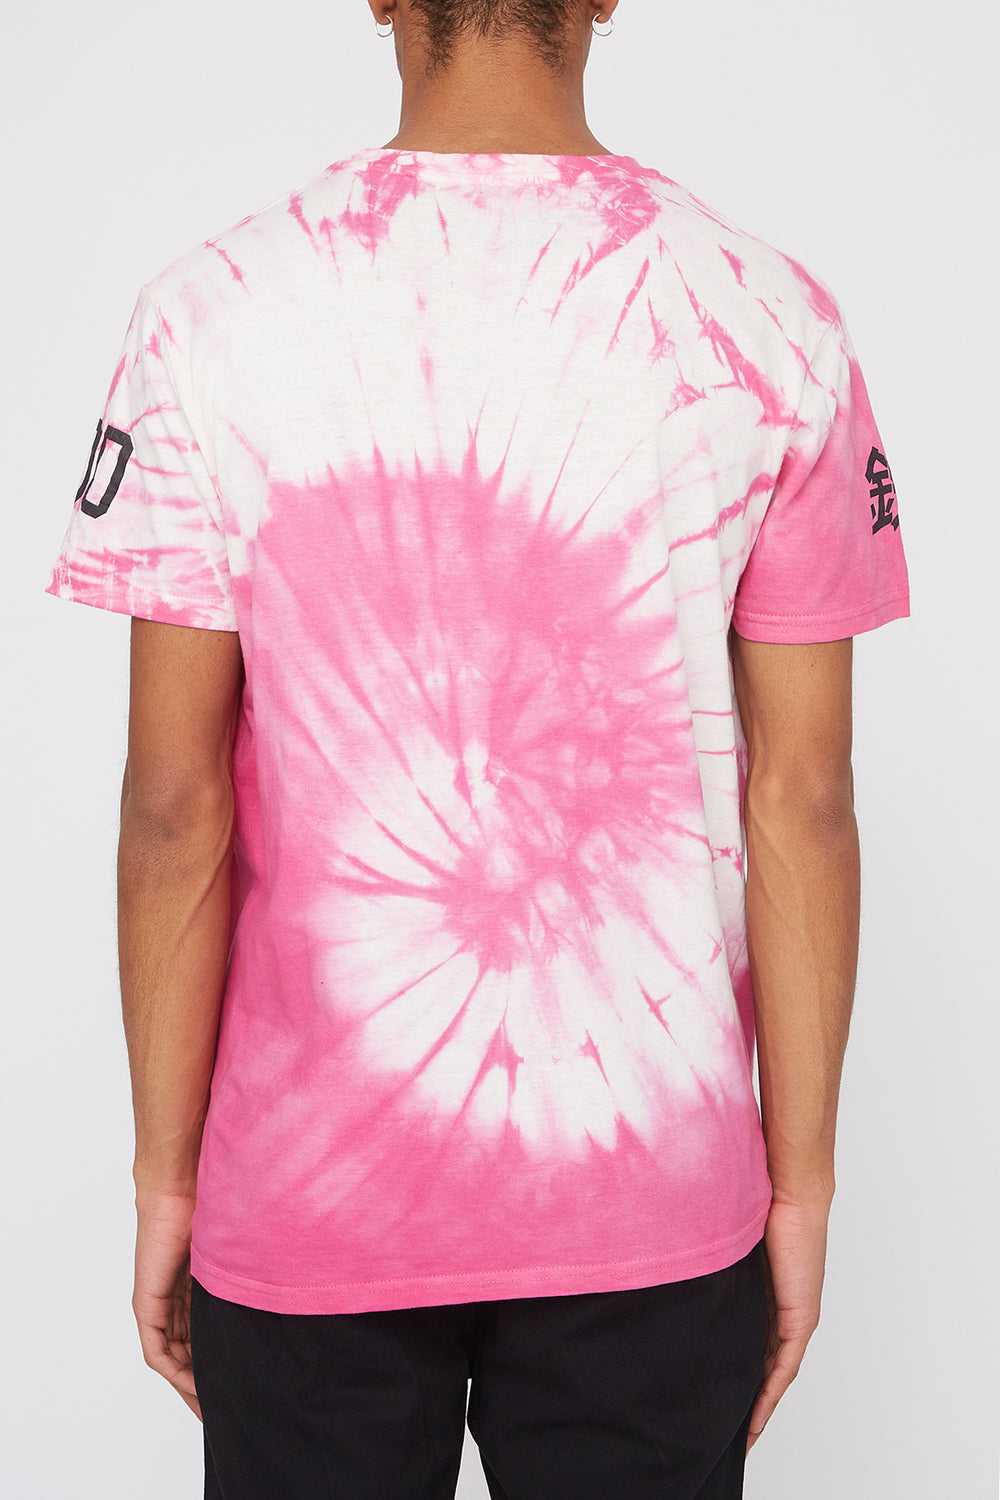 Young & Reckless Mens Logo Tie-Dye T-Shirt Pink